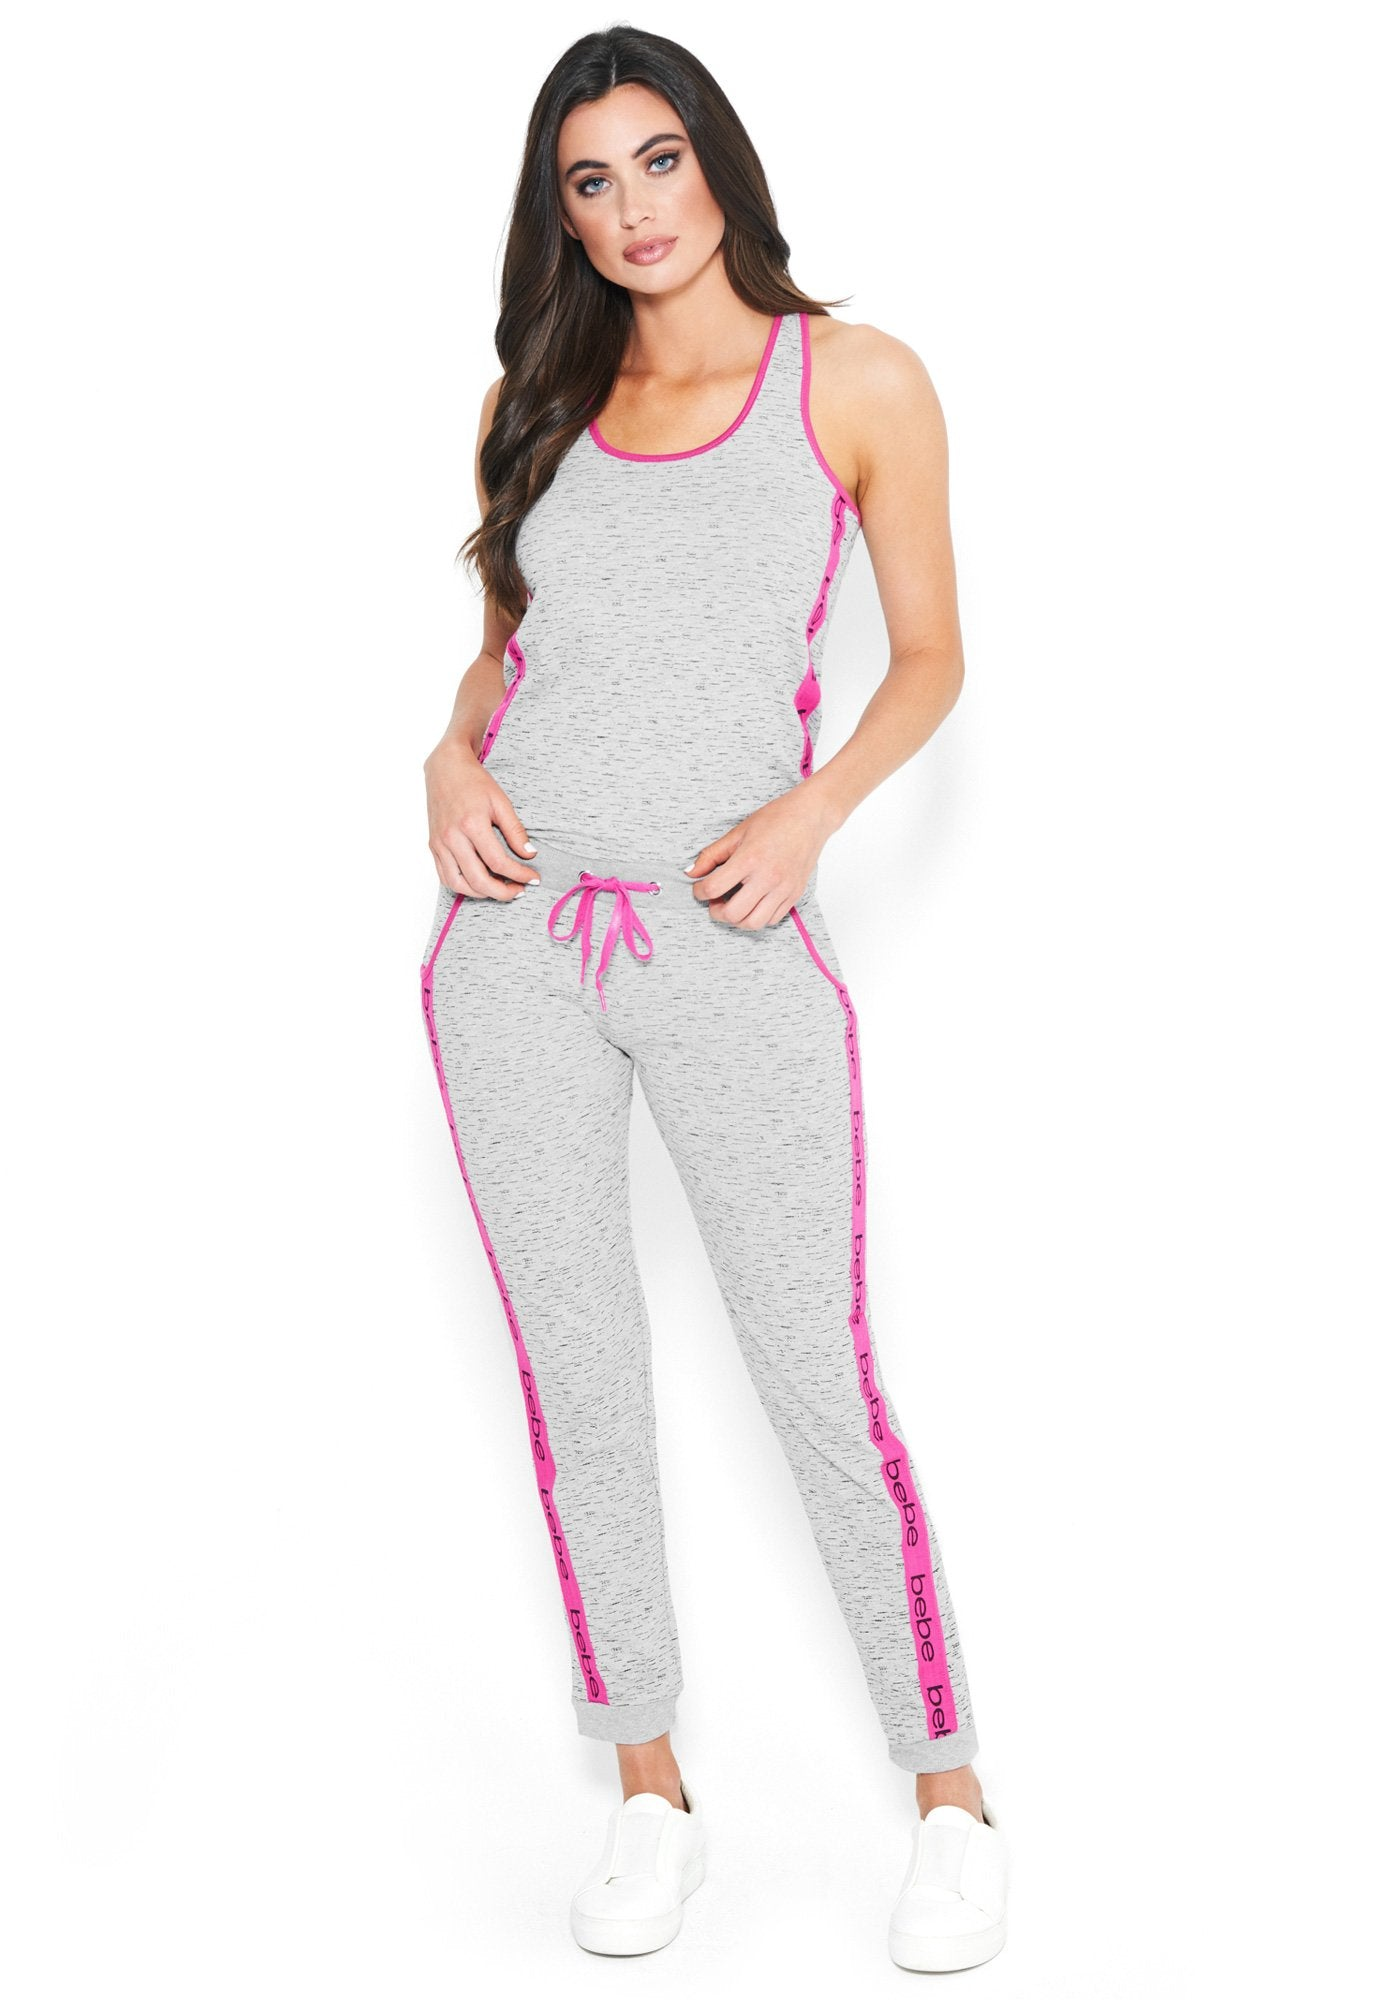 Women's Bebe Logo Constrast Pant Set, Size Small in Heather Grey Cotton